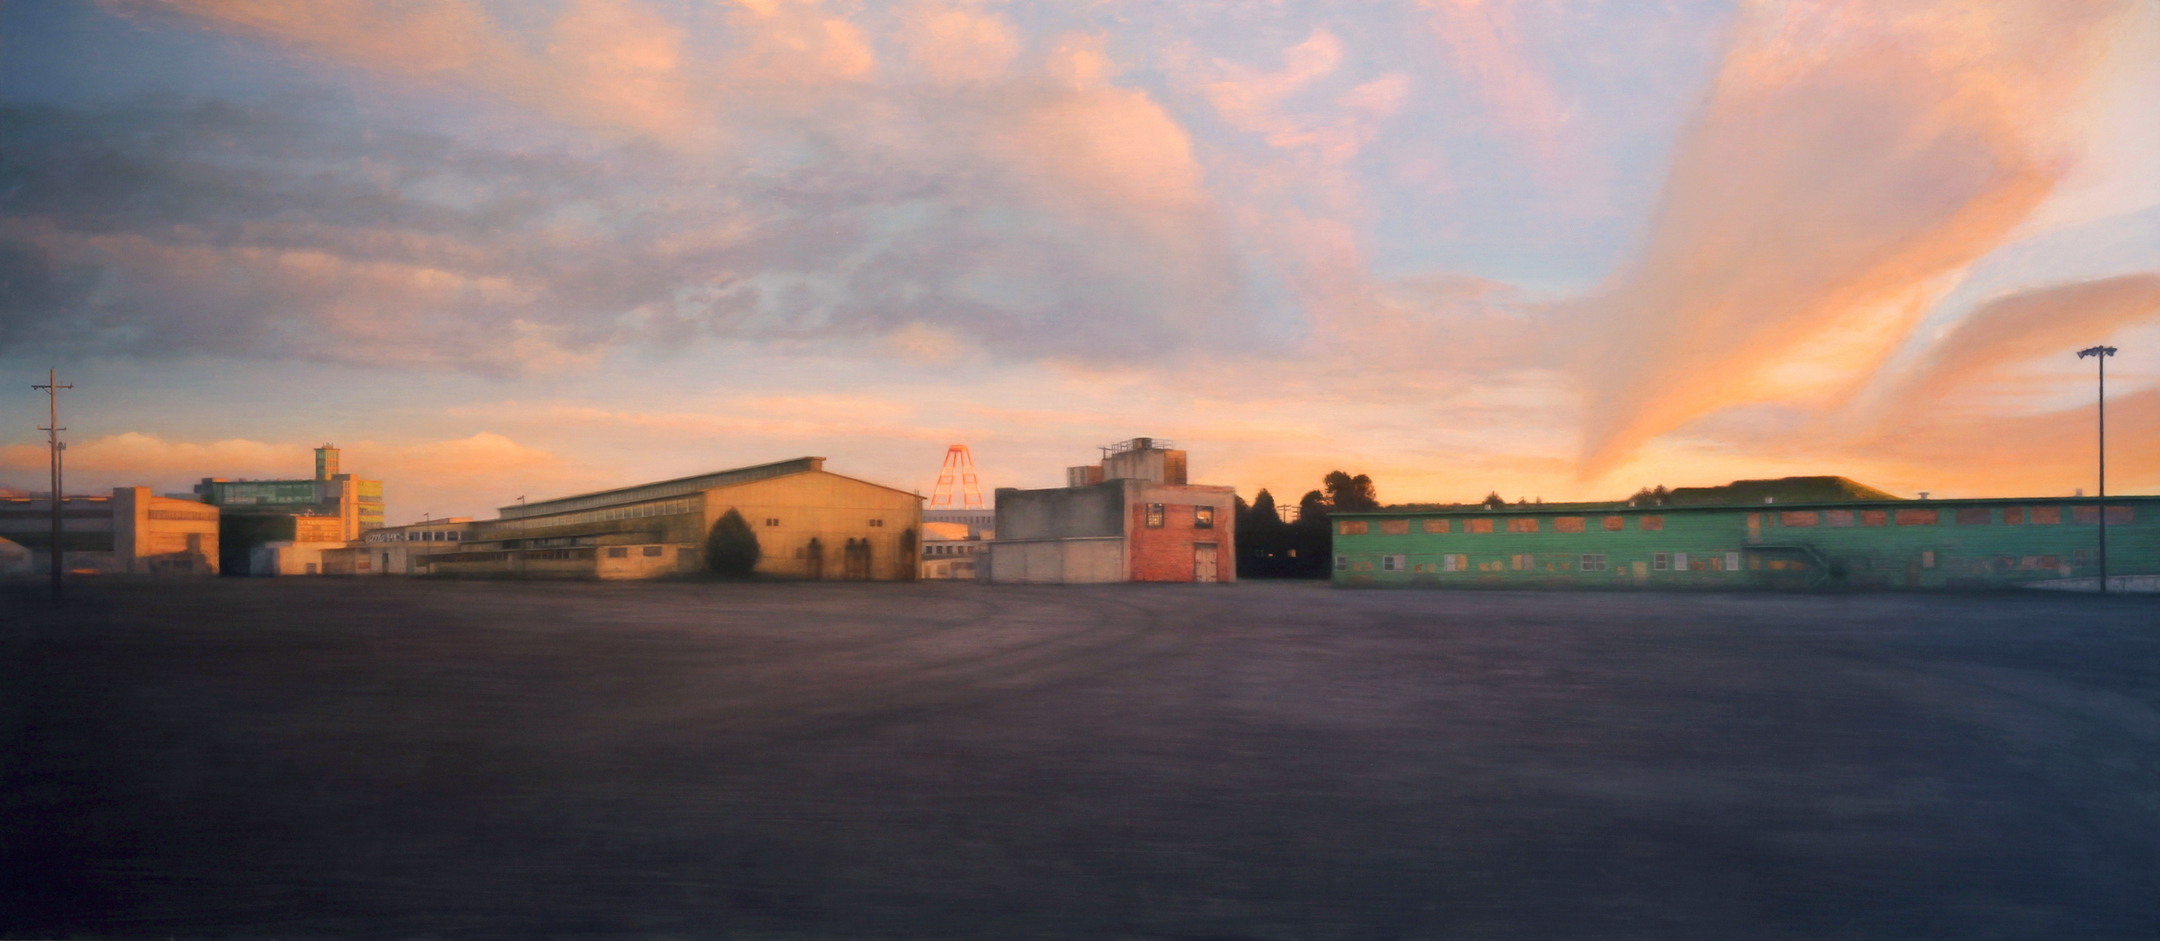 HPS-29, 2010; oil on canvas; 52 x 120 in.